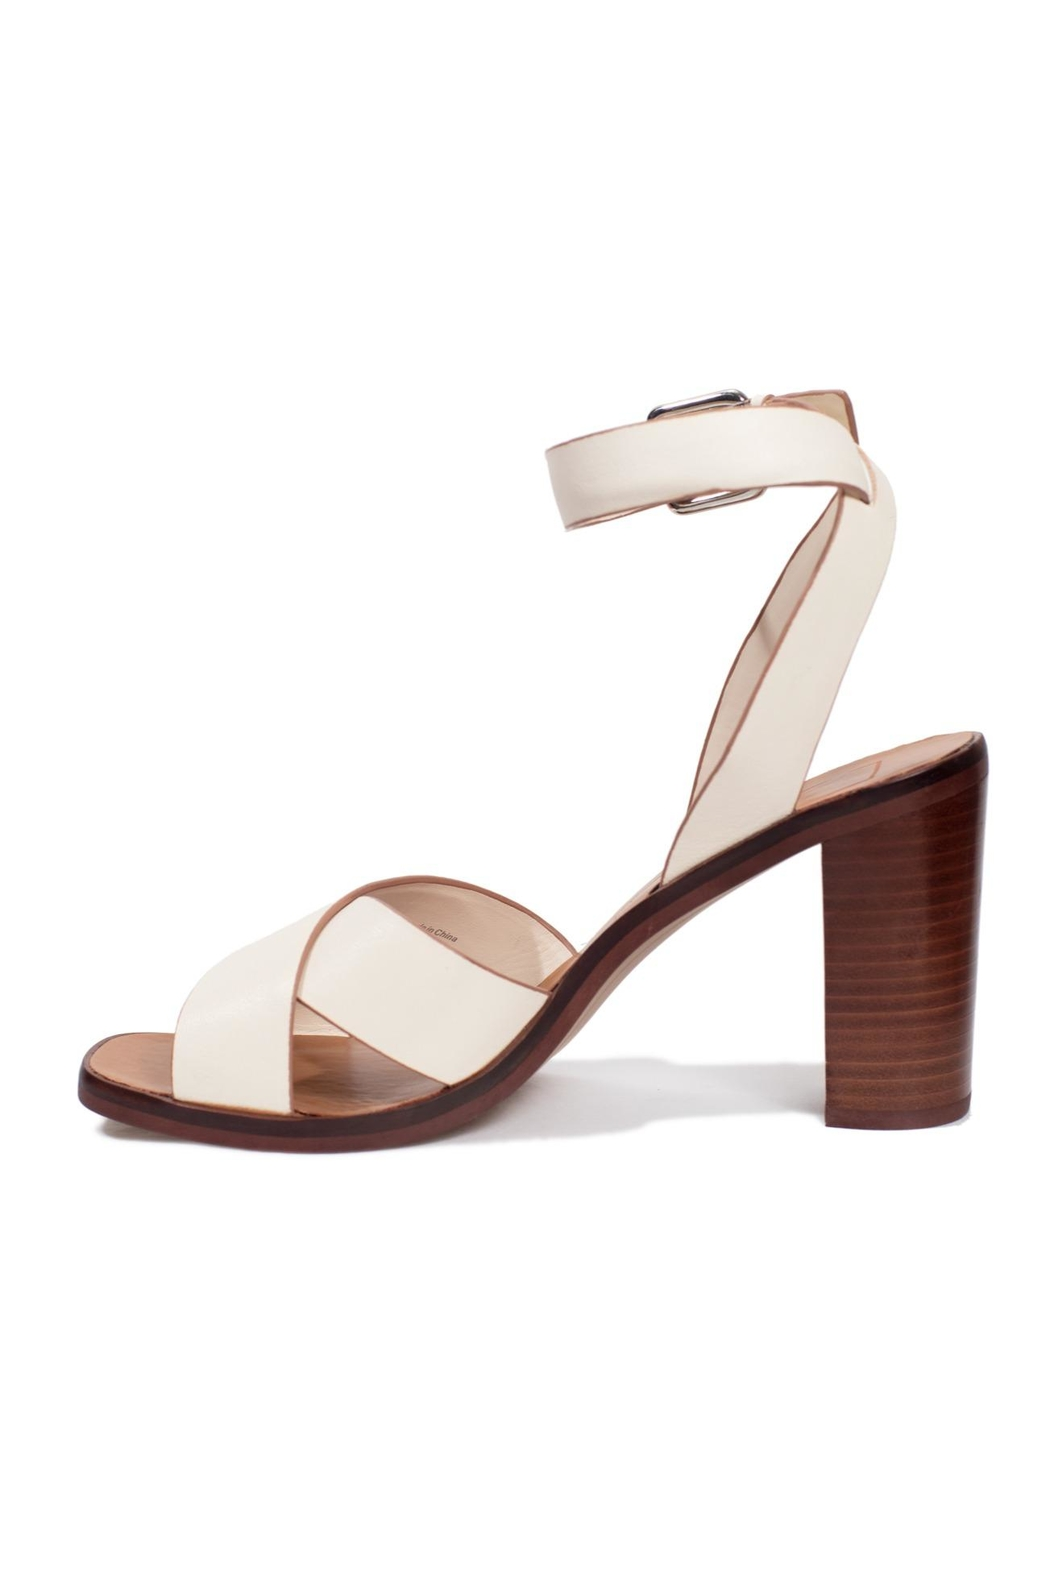 Dolce Vita Ivory Leather Heel - Front Cropped Image